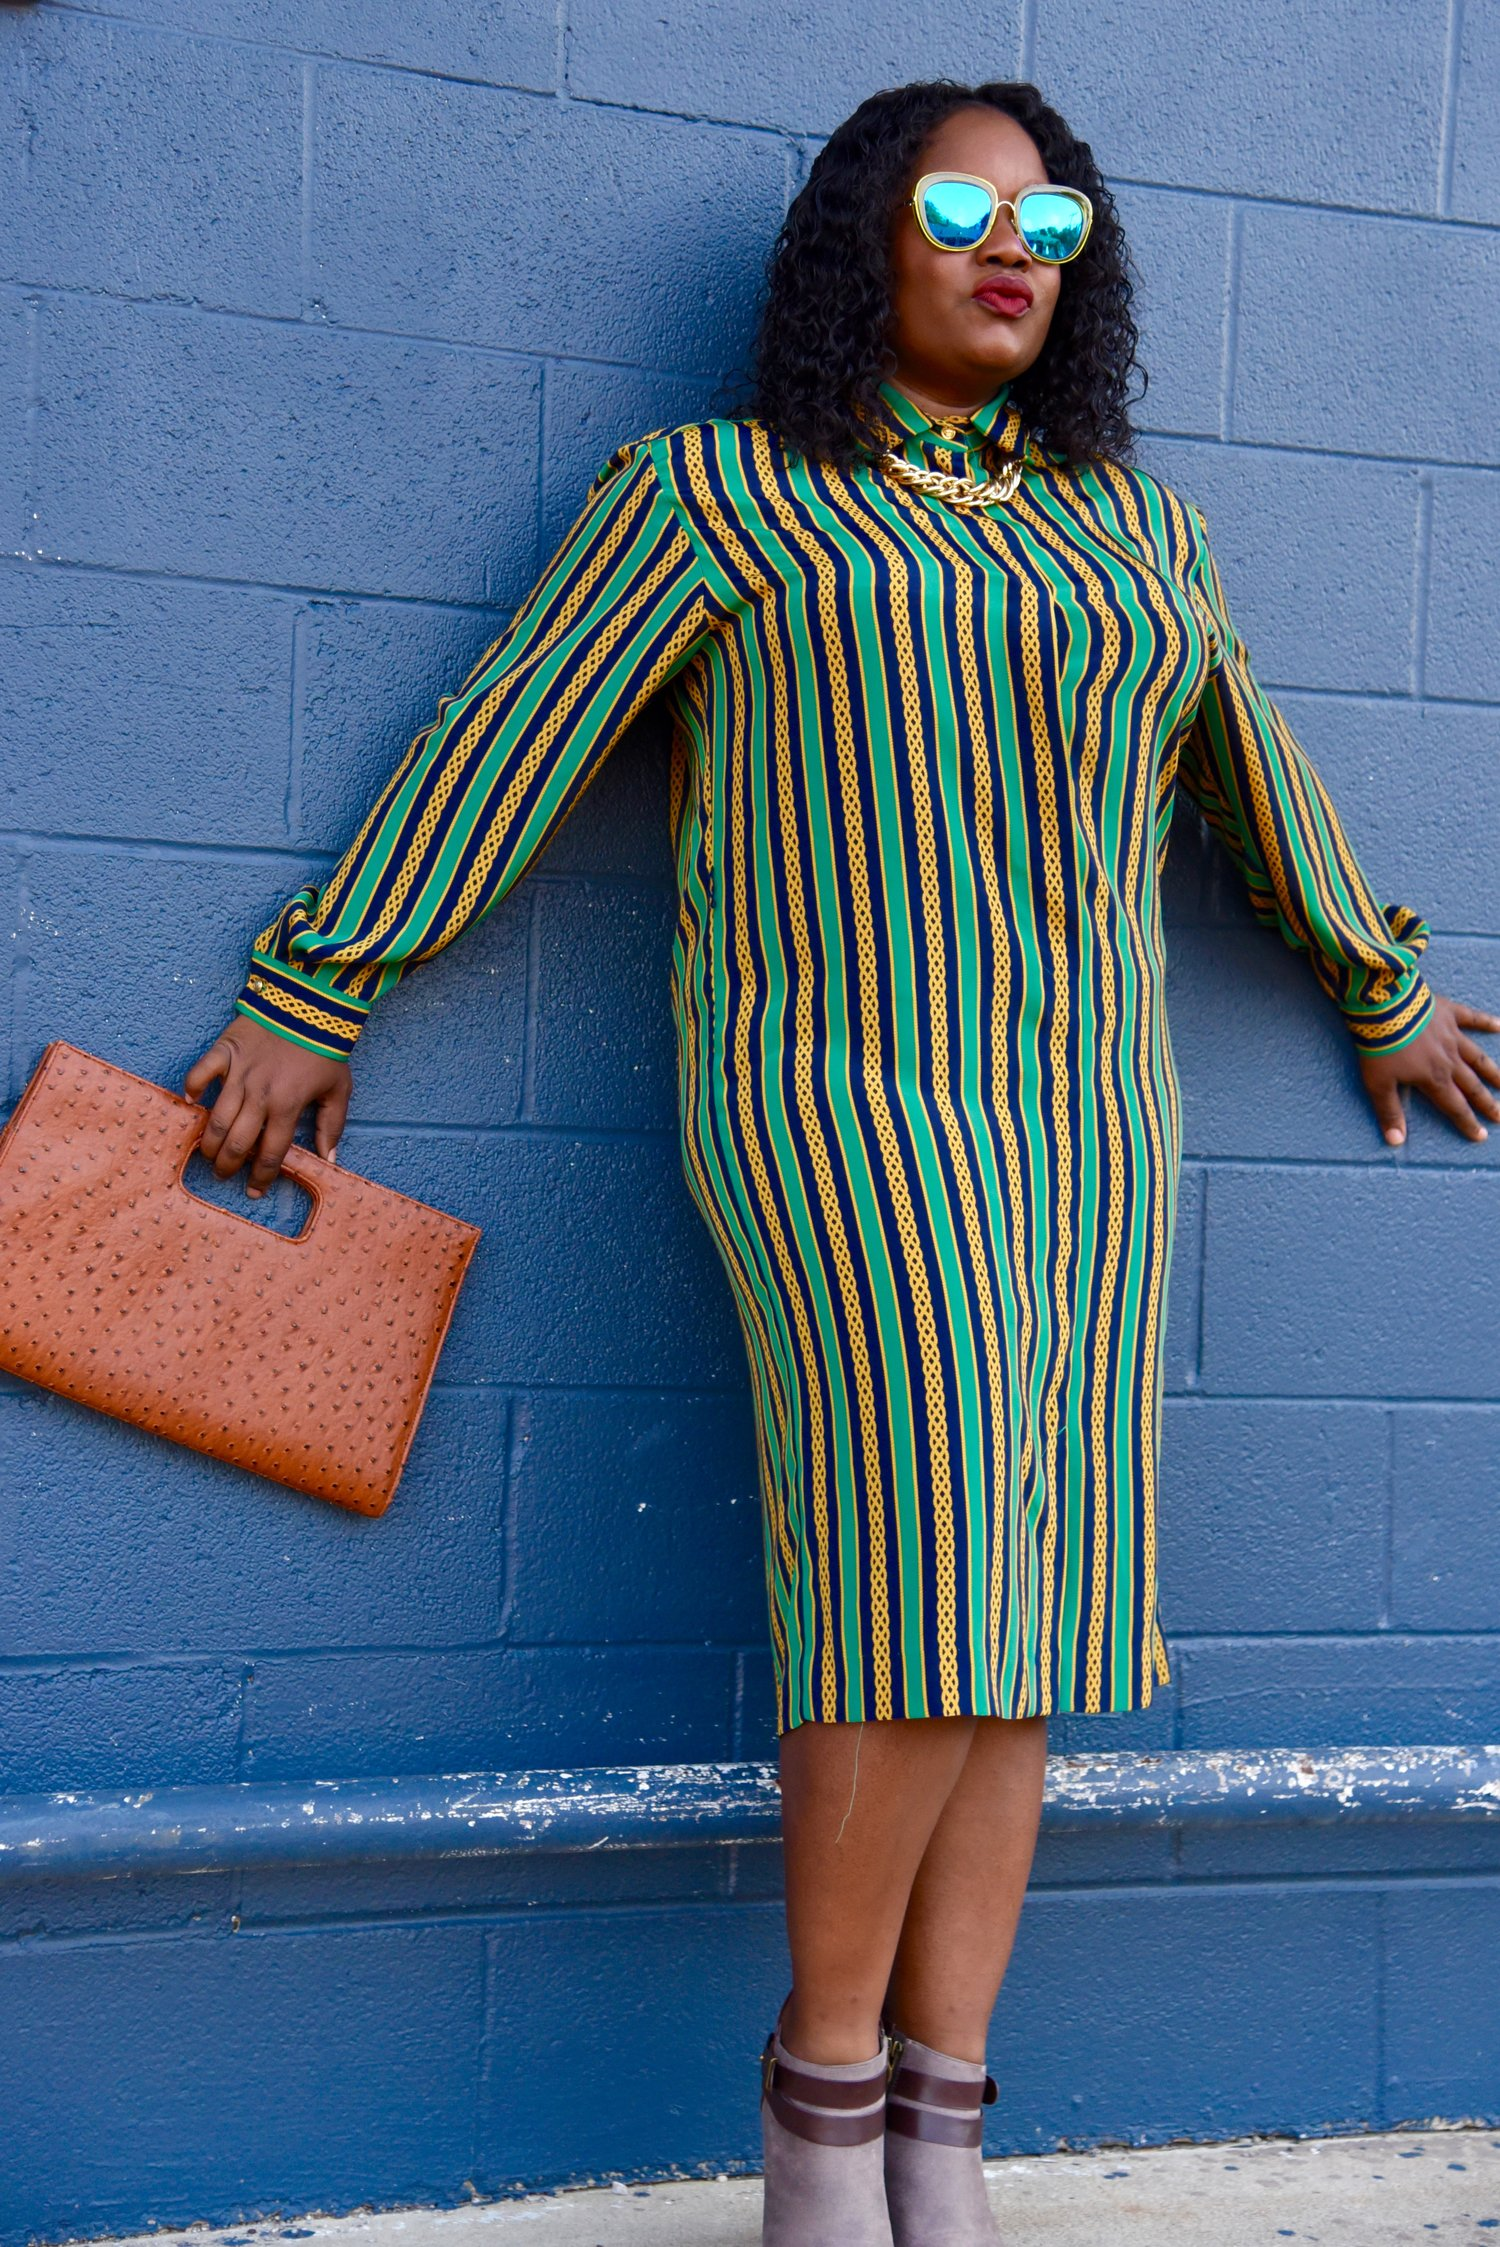 The Gold, Navy, and Money Green Chained Dress.